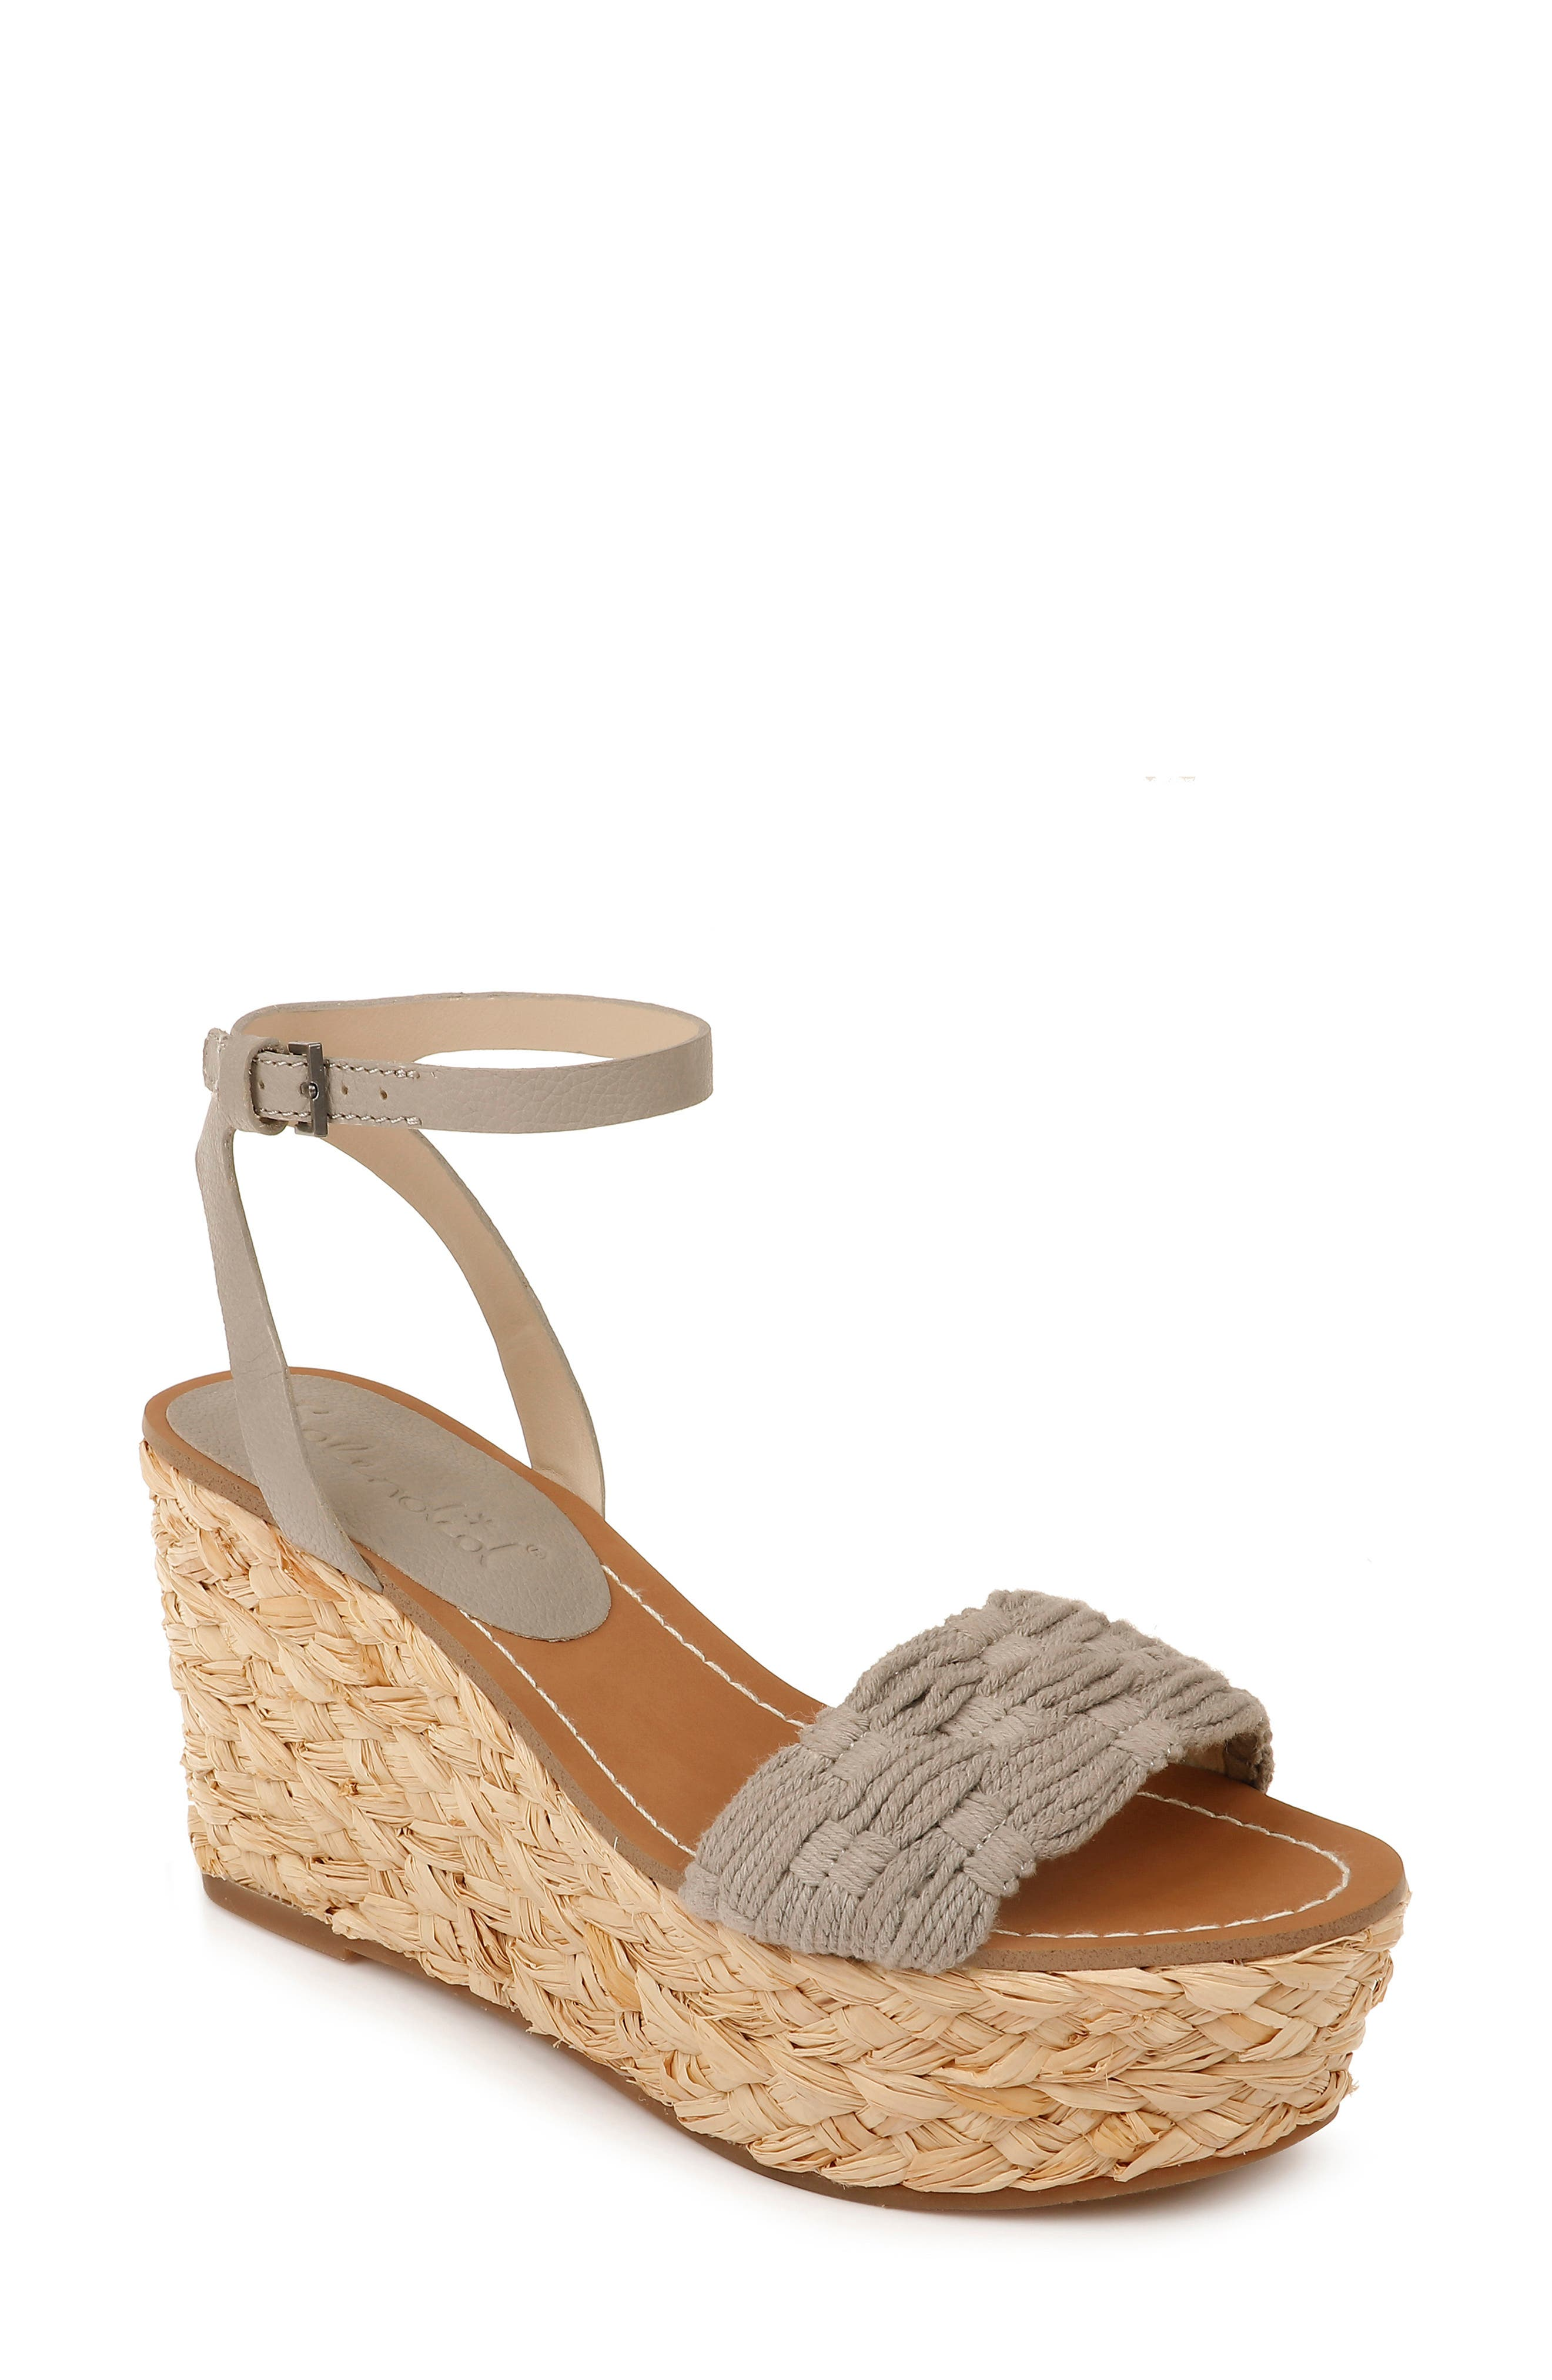 A tall espadrille-style platform wedge lofts a breezy ankle-strap sandal fashioned with a knotted strap at the toe. Style Name: Splendid Marlene Platform Wedge Sandal (Women). Style Number: 5985116. Available in stores.